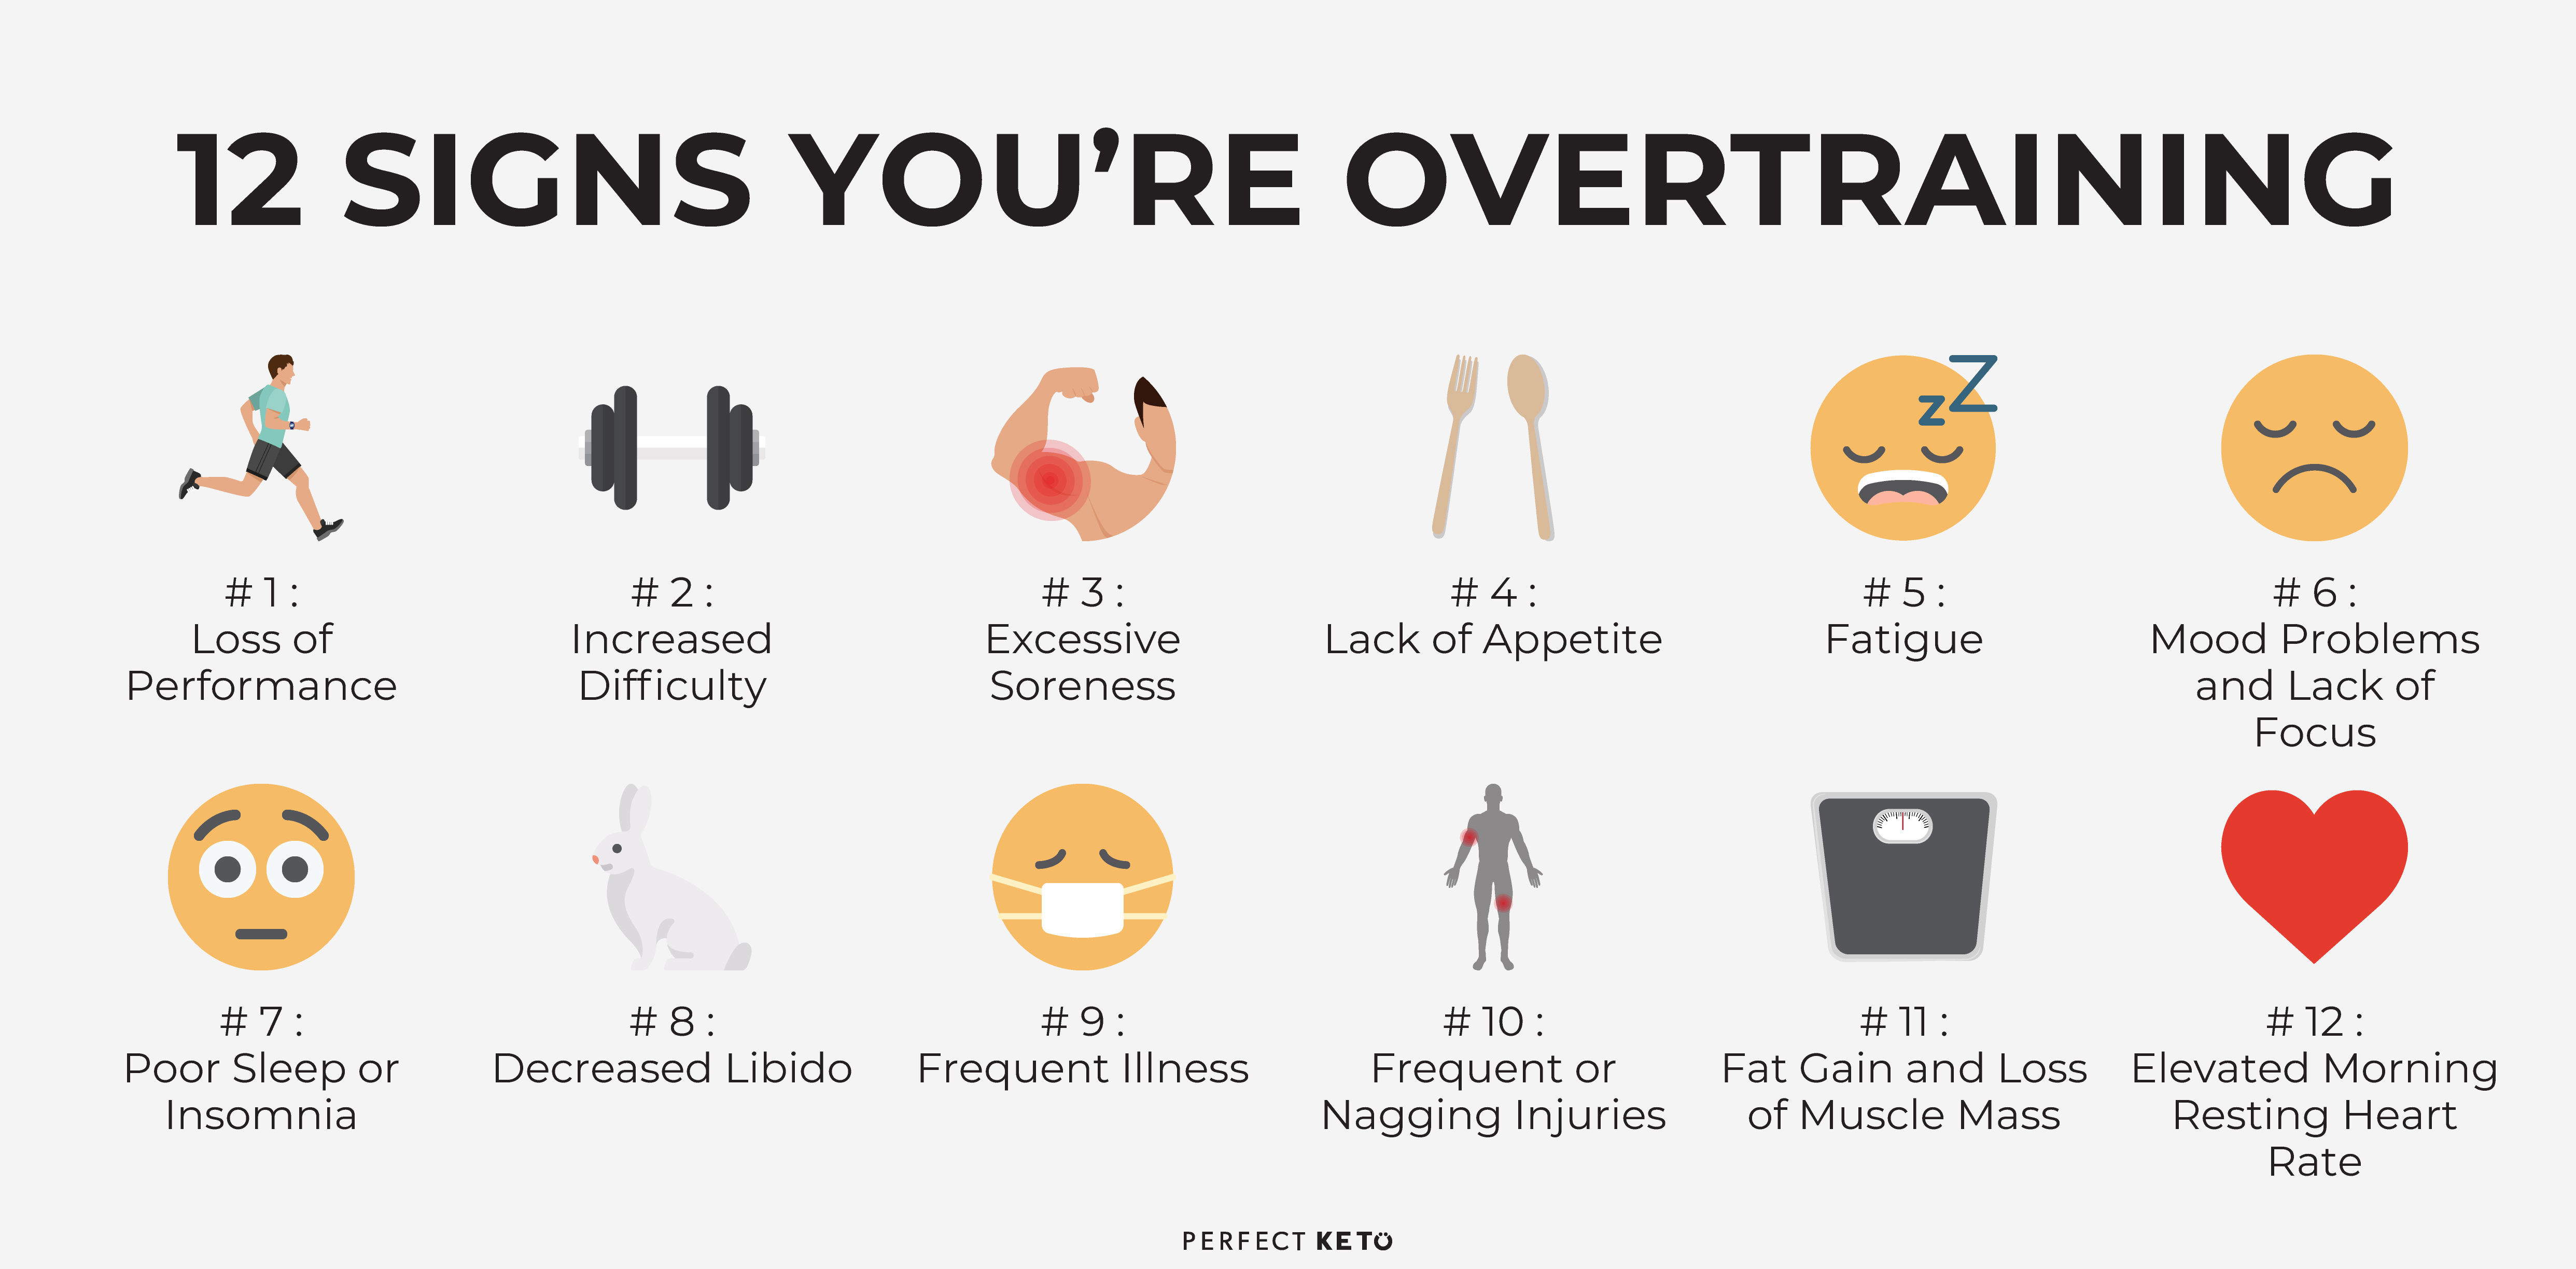 12-signs-you-are-overtraining.jpg